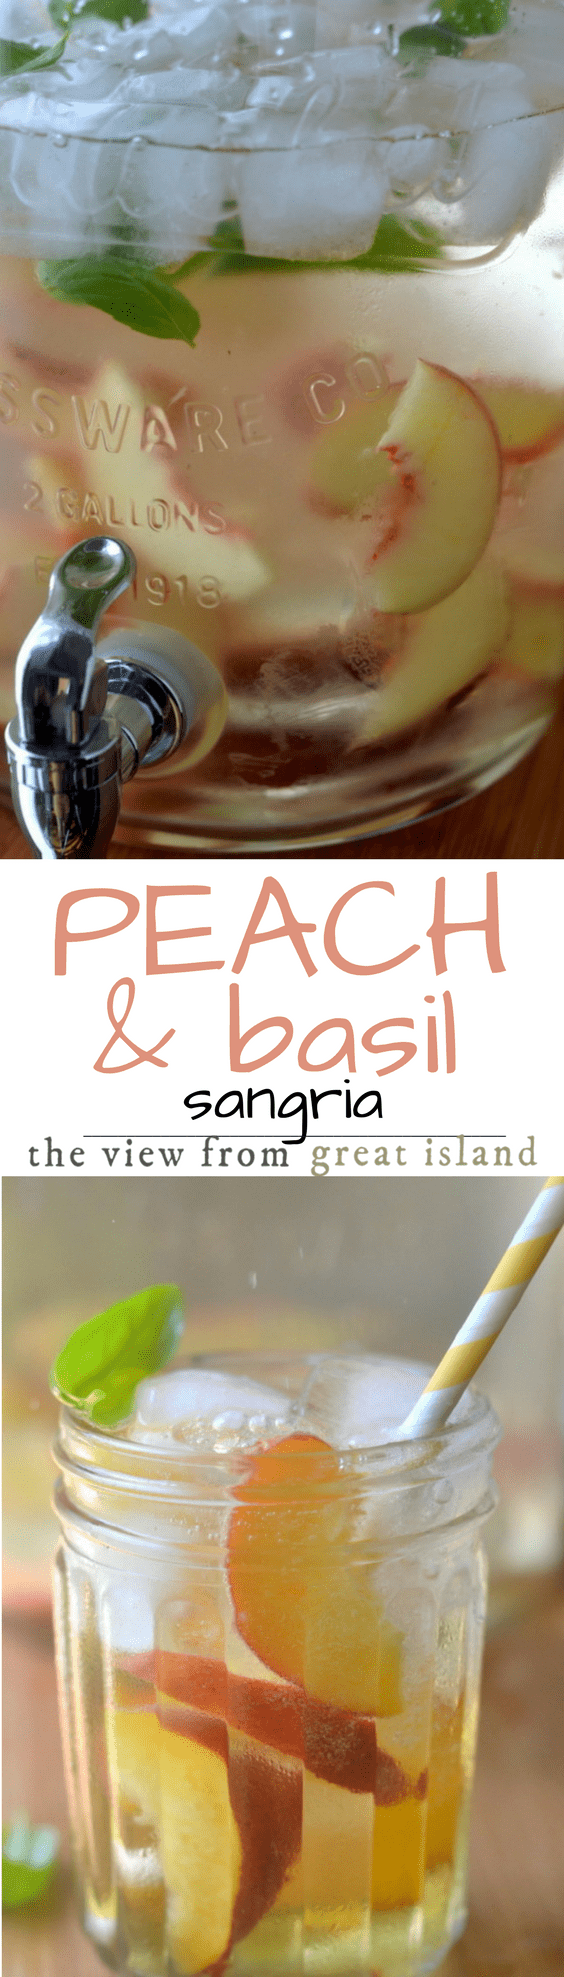 Summer Peach and Basil Sangria is the ultimate in summer refreshment, and this is THE drink you'll want to have chilling in the backyard all season long... | cocktails | beverage | summer drinks | wine |